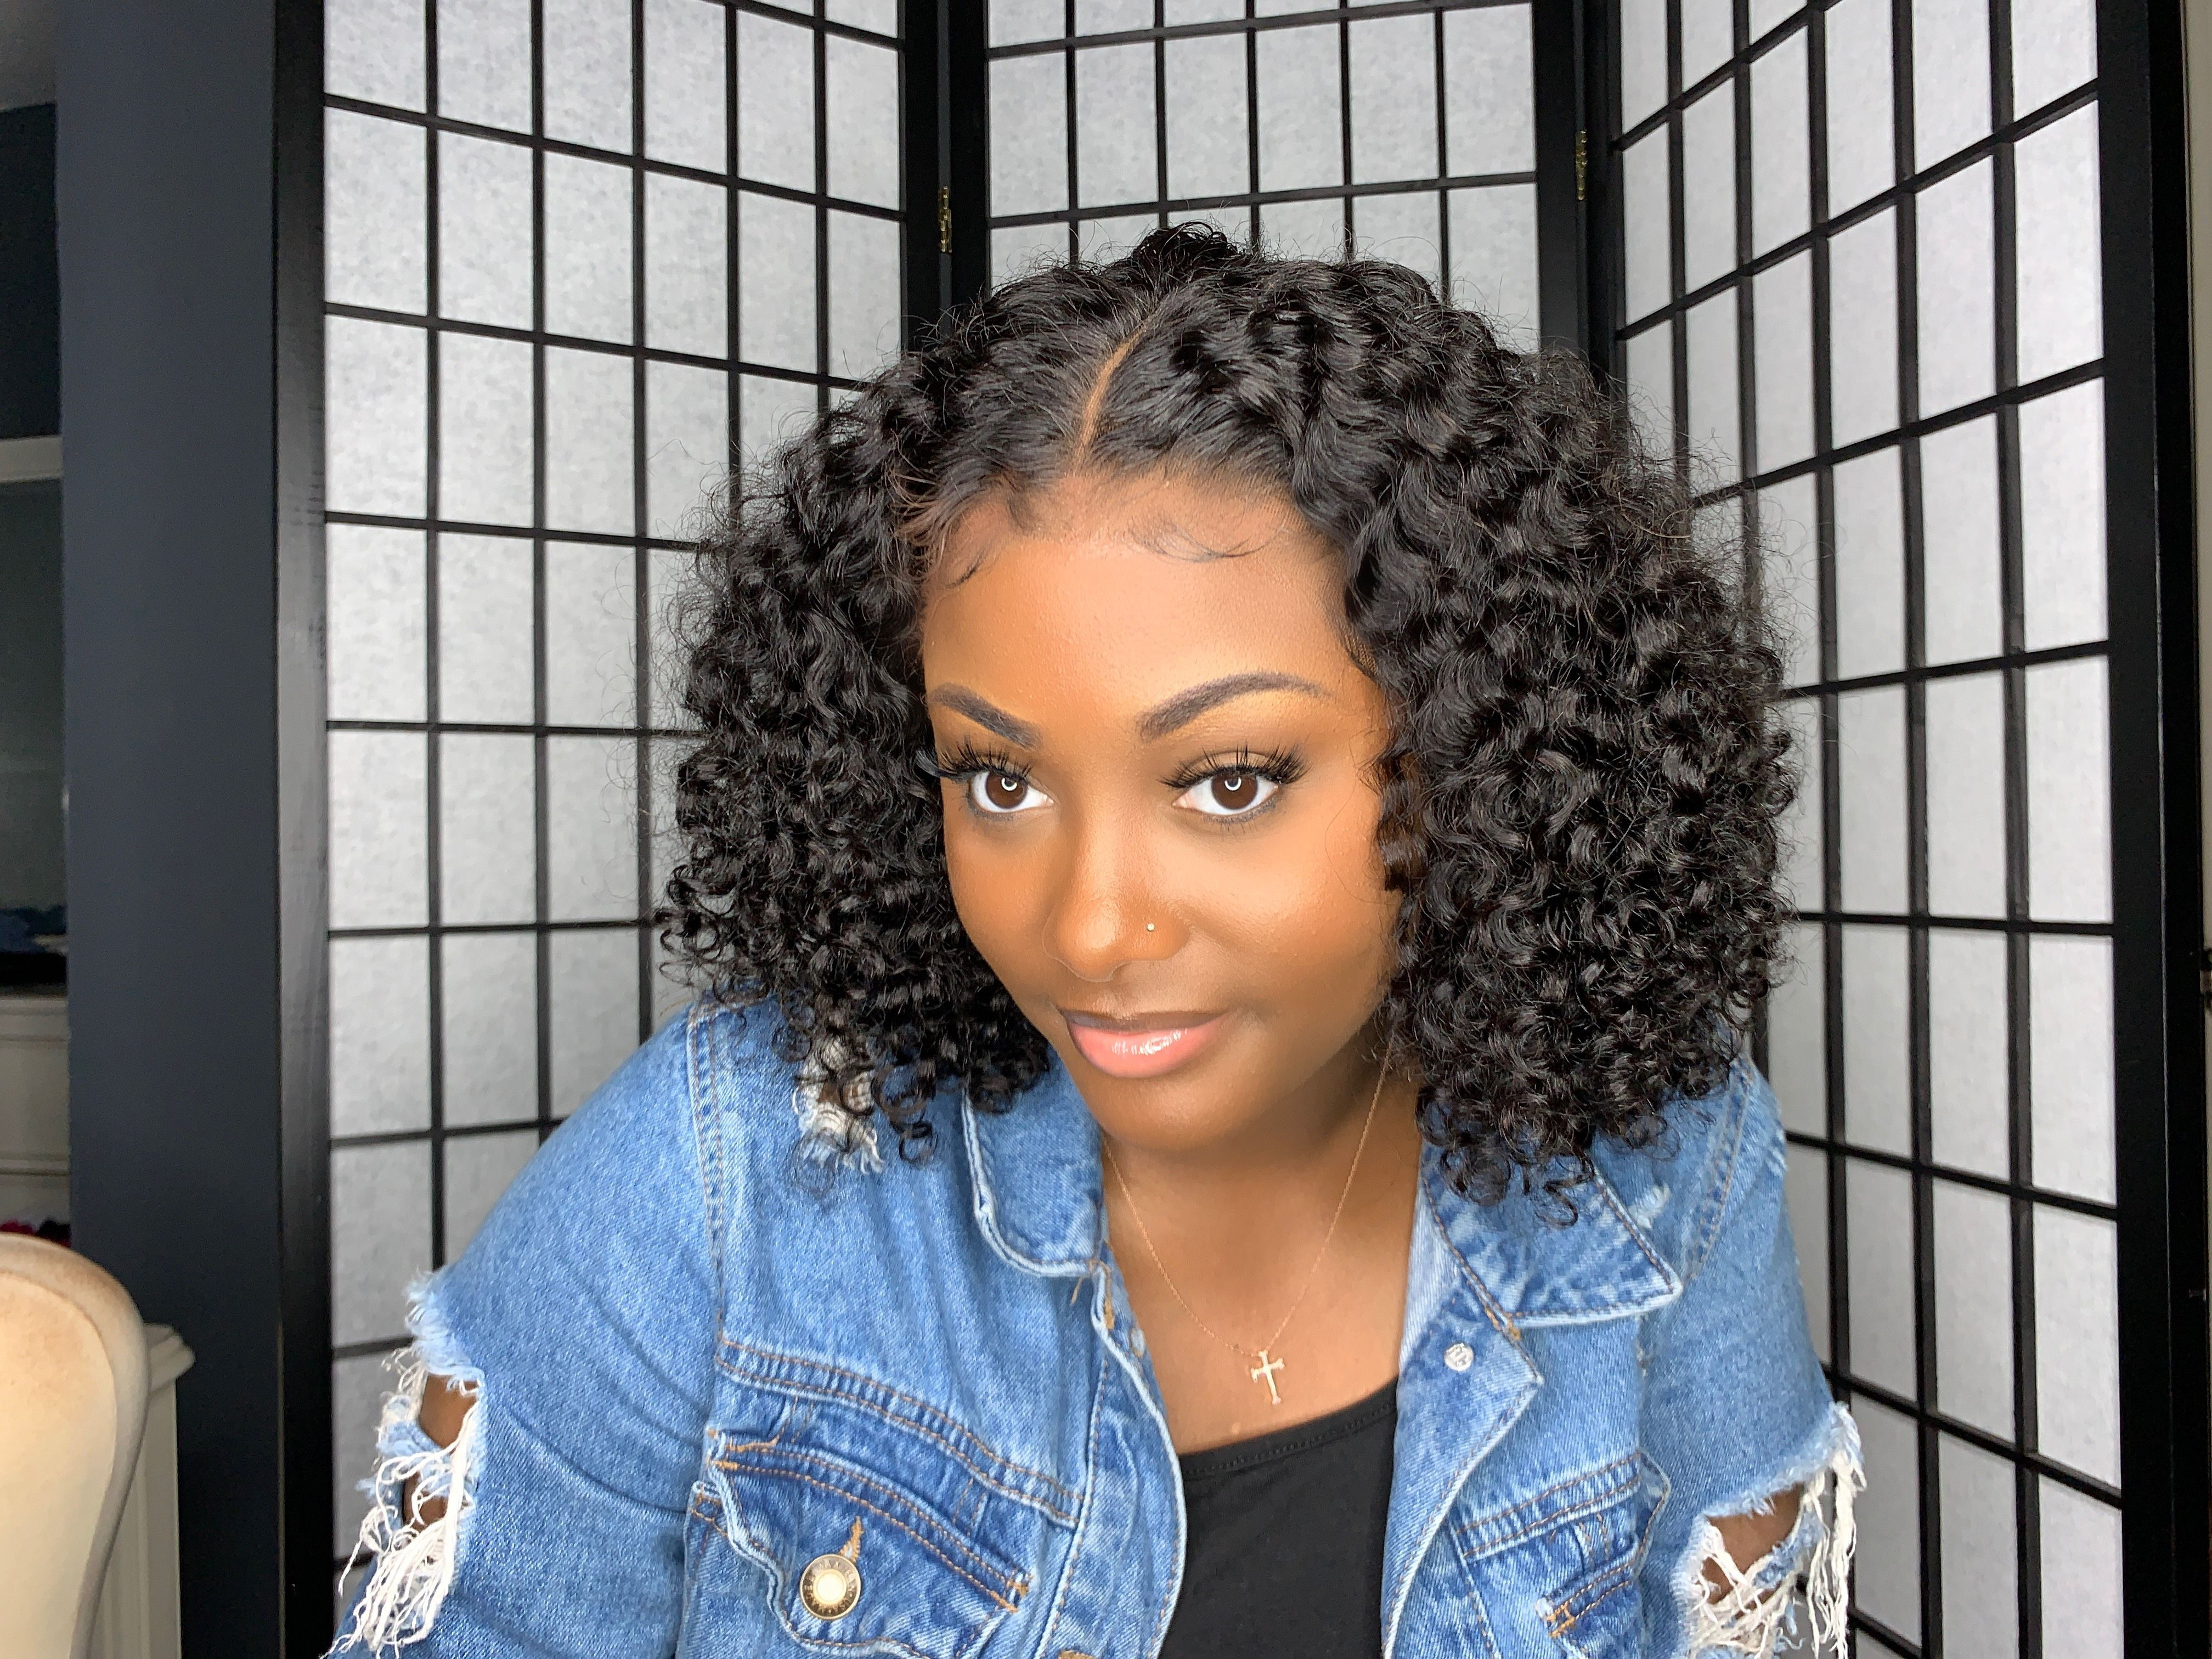 Curly Wigs Lace Front Curly Hair Black Hair Wigs That Look Real Artificial Hair Extension Blonde Lace Wig 10 Inch Human Hair Weave